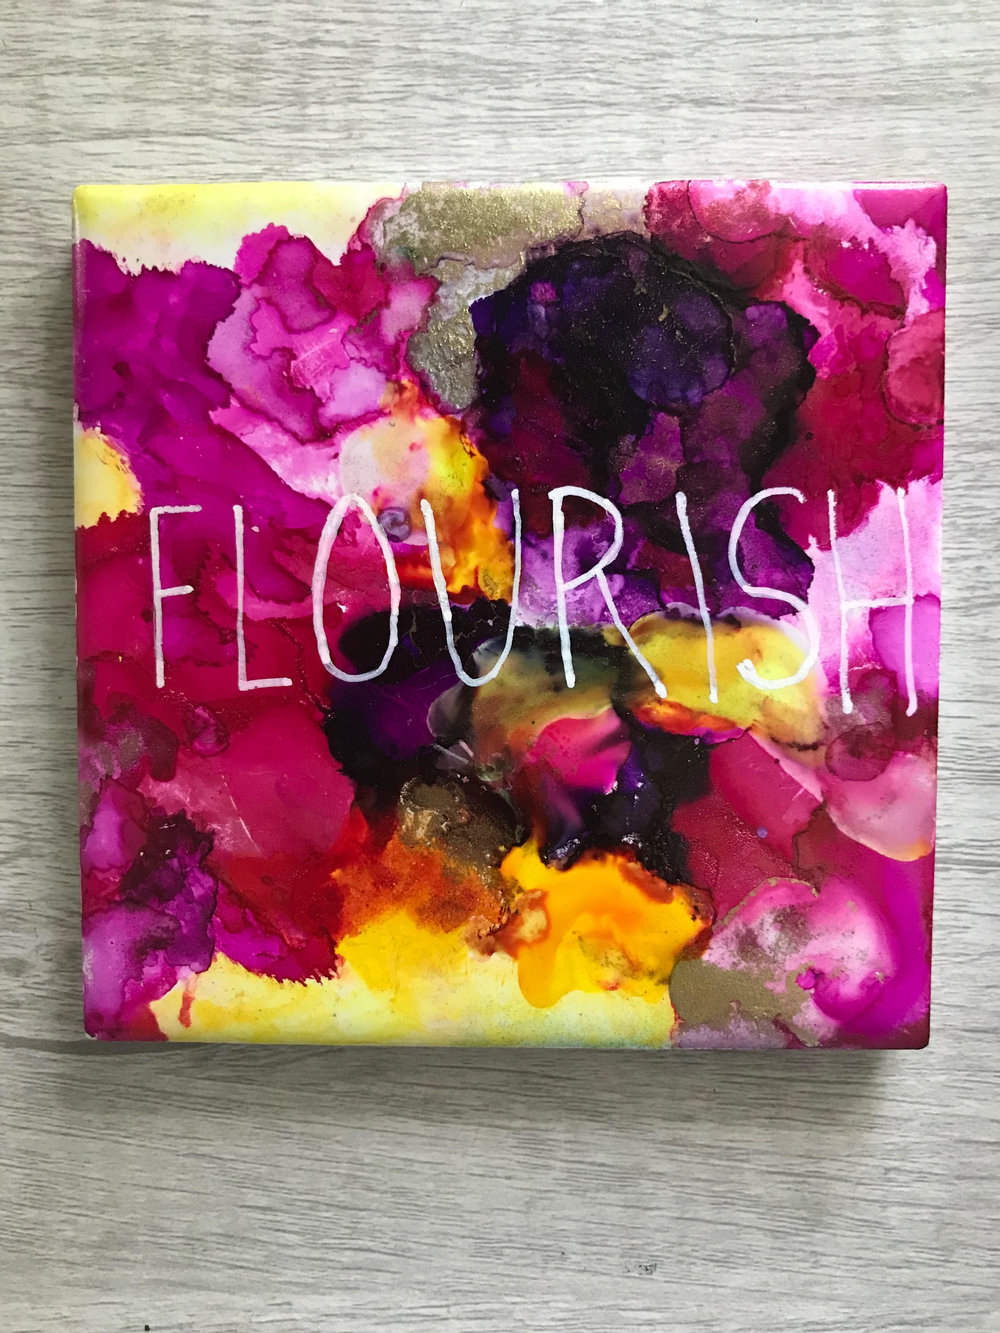 """Flourish"" 4x4"" ceramic tile, for sale"